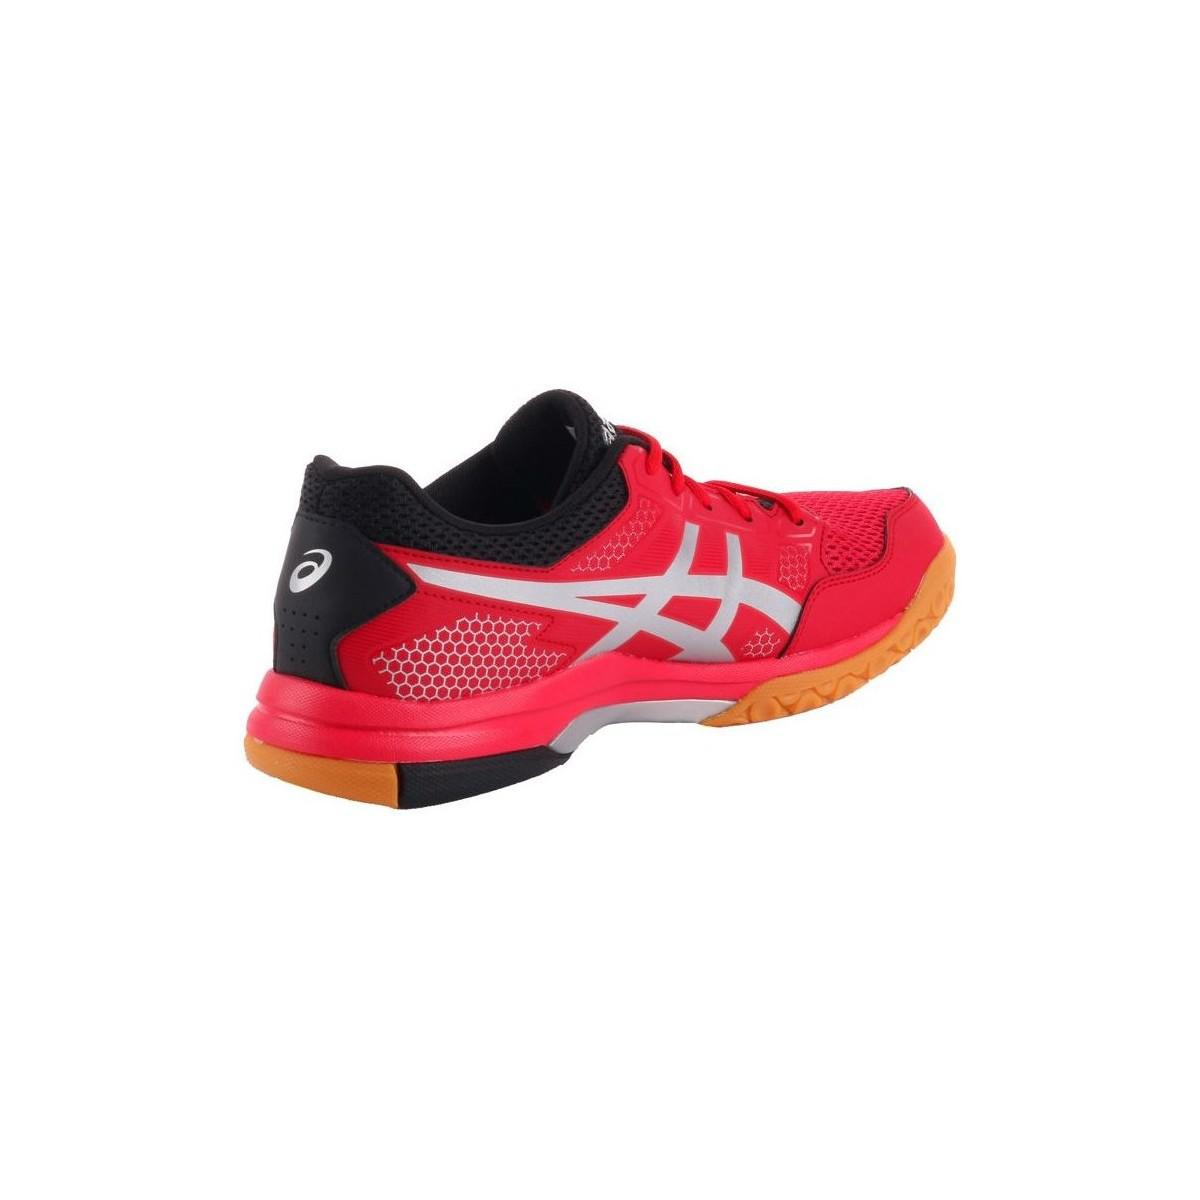 Asics Gelrocket Gelrocket Asics 8 600 Men's Schuhes (trainers) In ROT in ROT for Men ... f37098